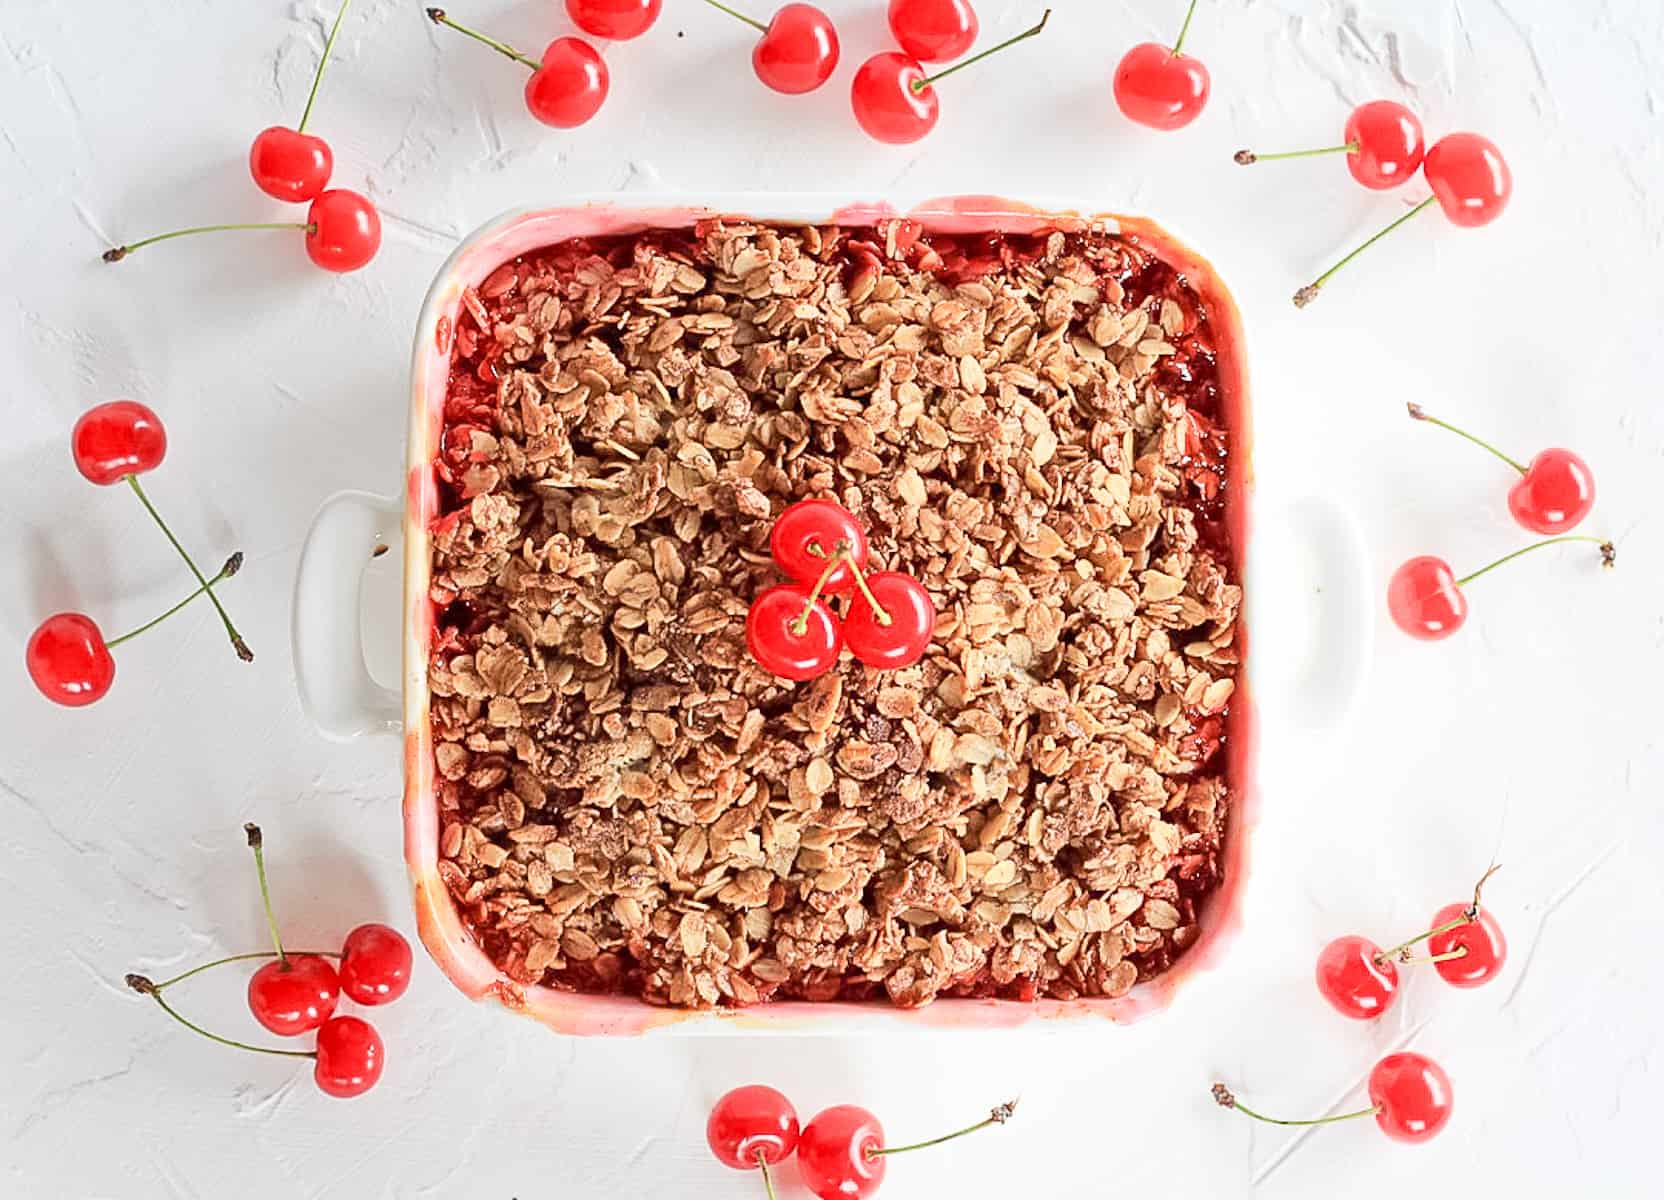 Overhead view of a square white baking dish filled with sour cherries and crisp oat topping.